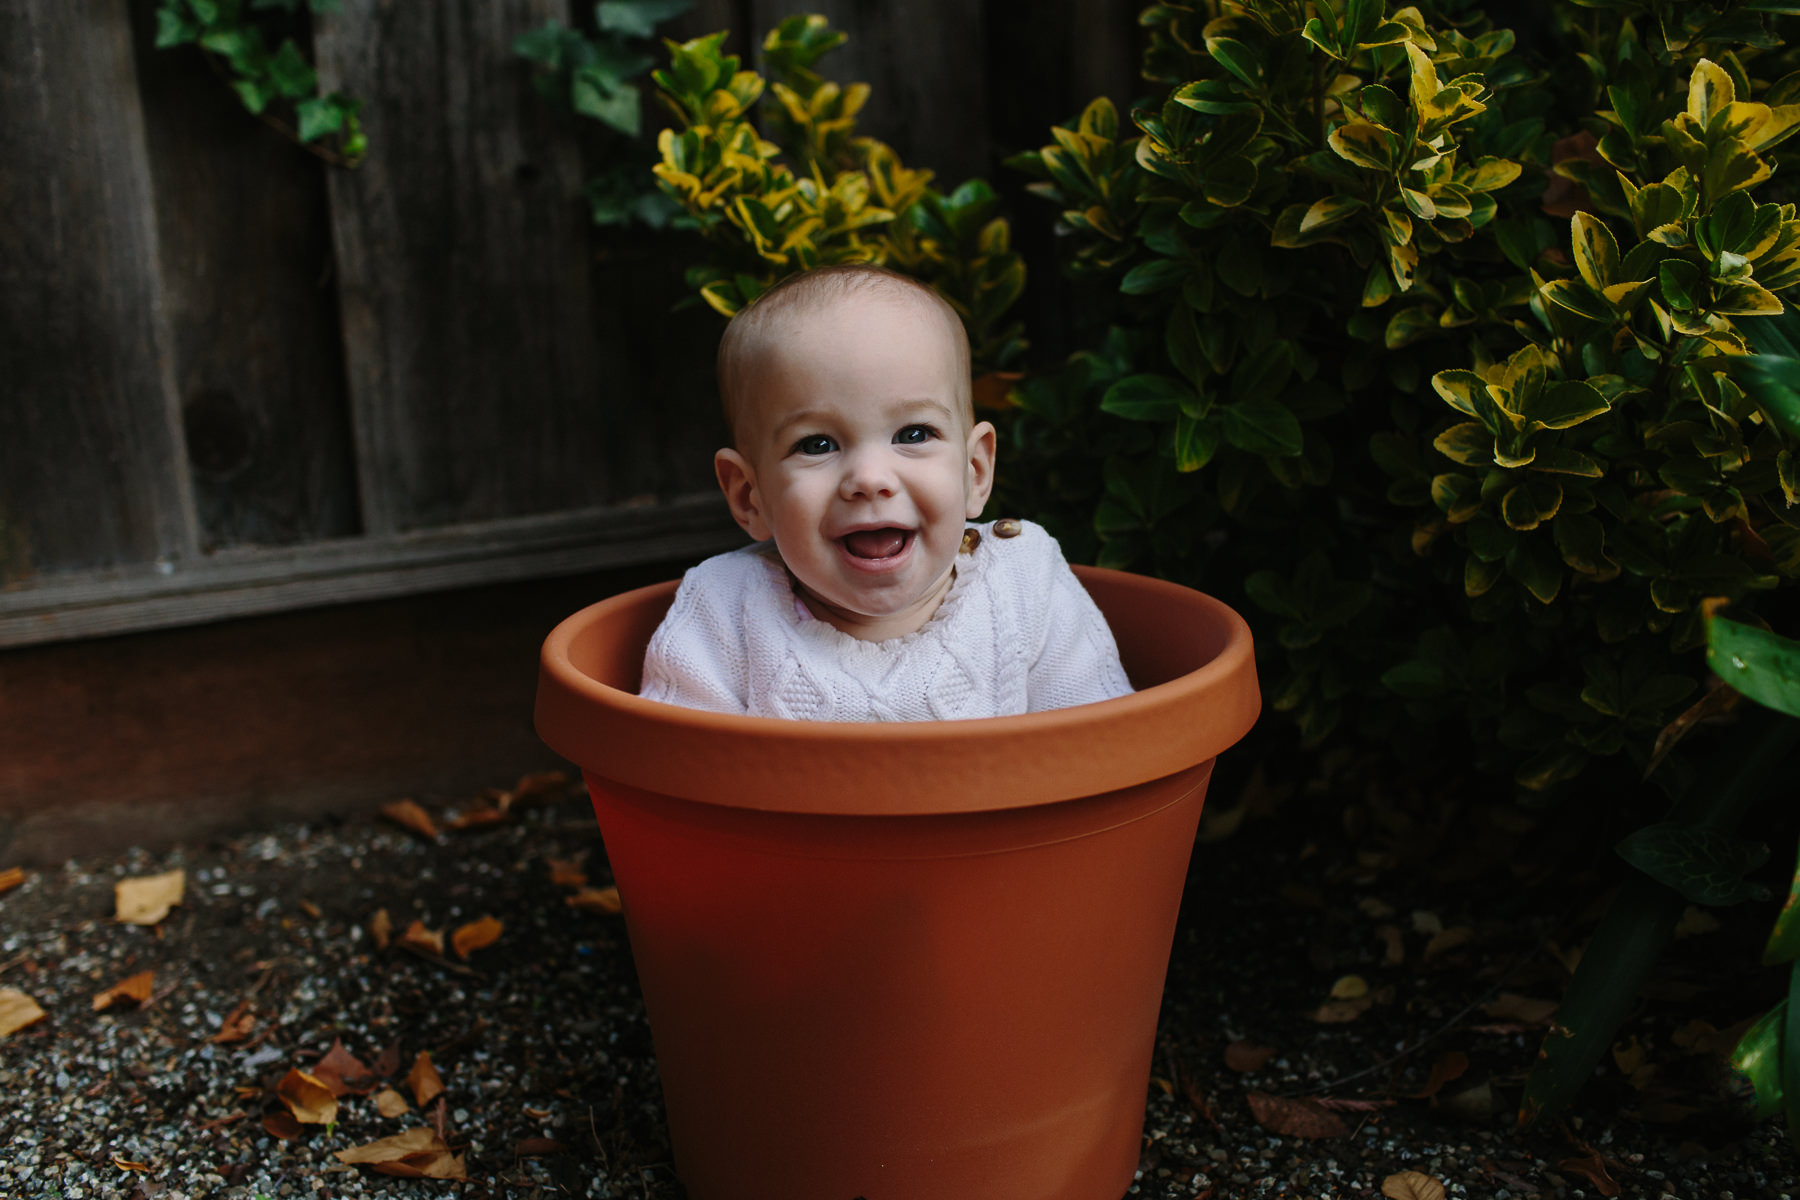 the-curiosity-project-blog-halloween-plant-lady-costumes (2 of 13).jpg